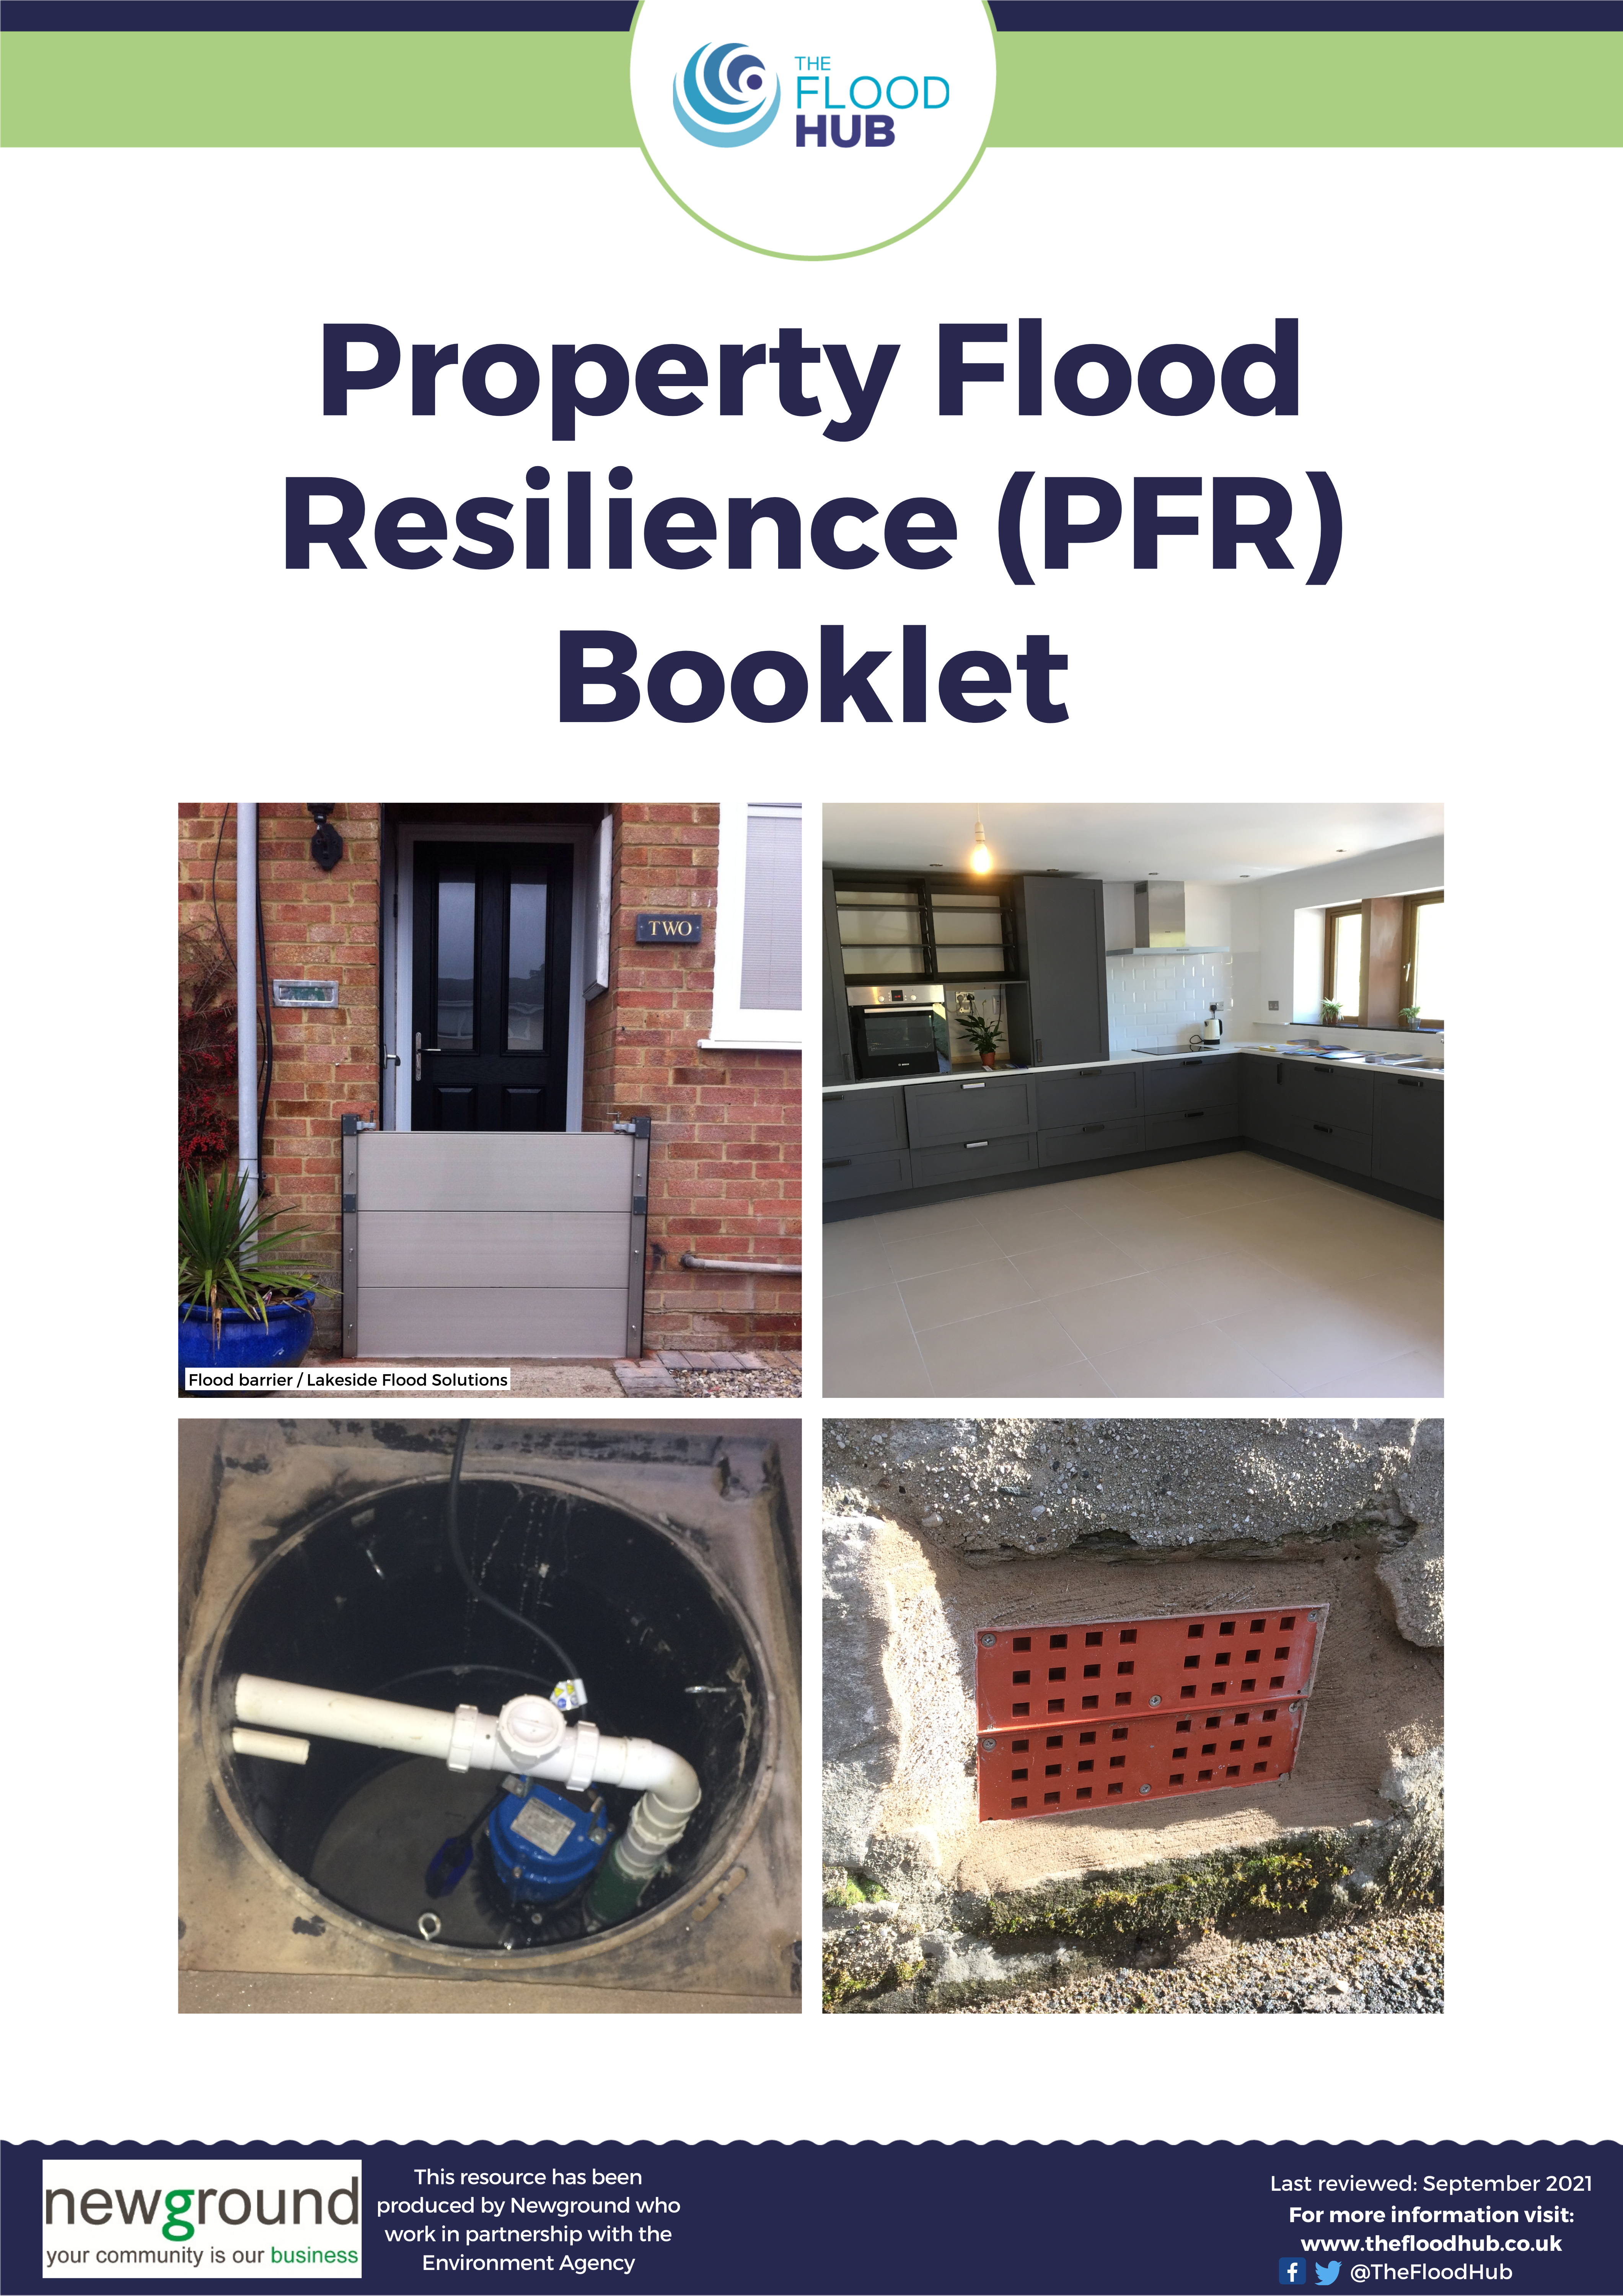 Property Flood Resilience (PFR) booklet